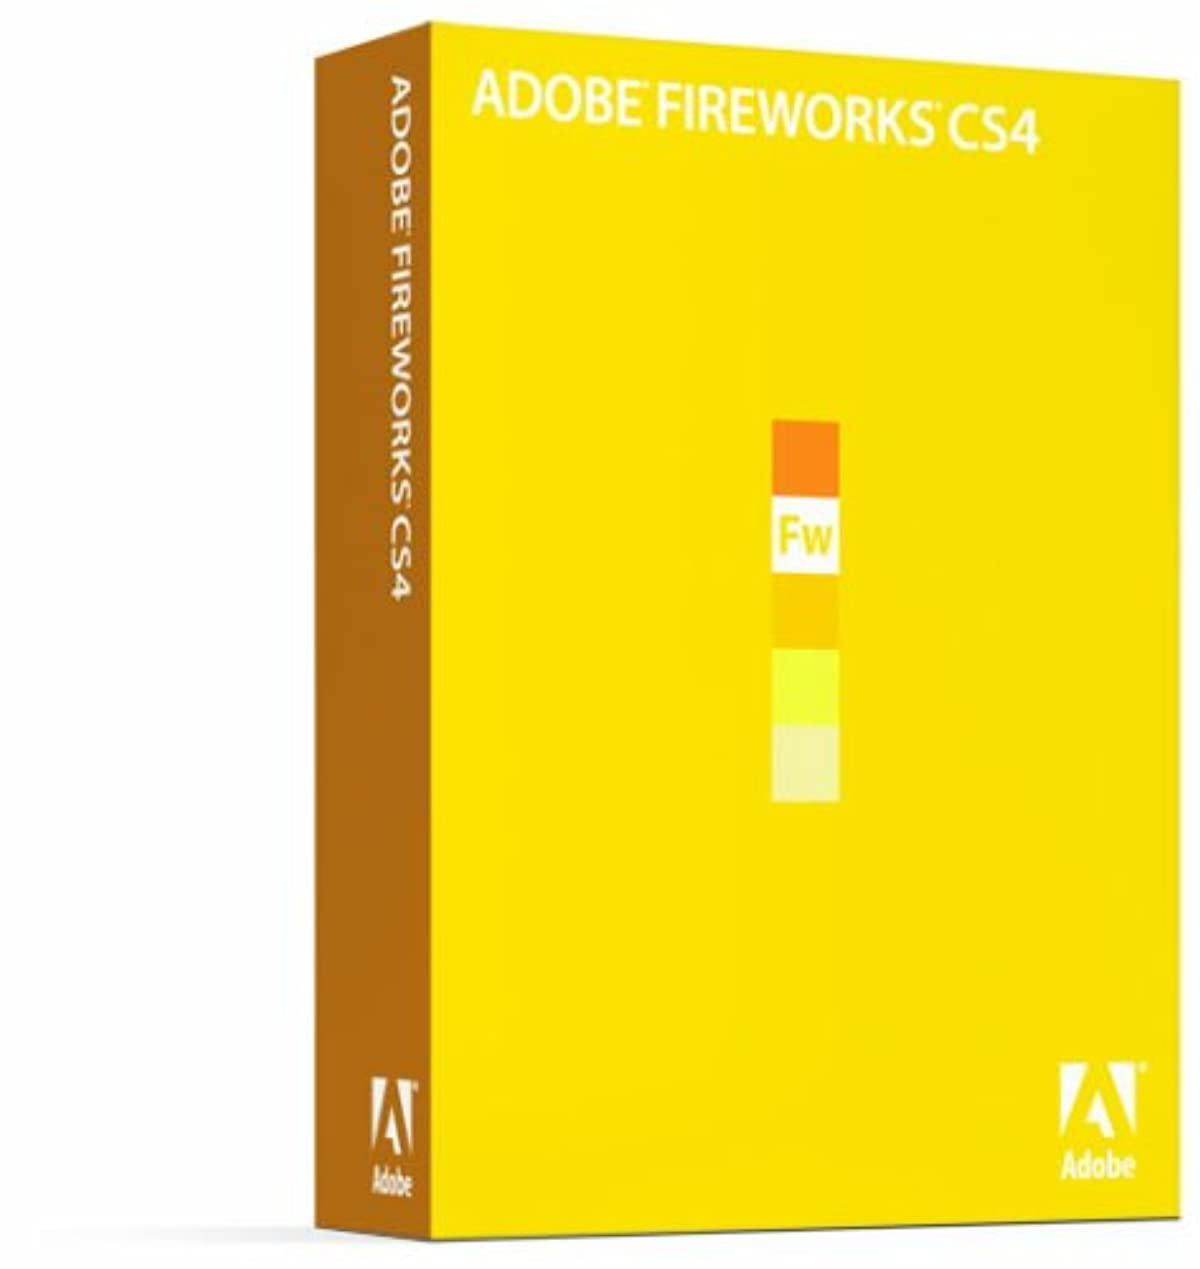 パンダ年齢貸すAdobe Fireworks CS4 (V10.0) 日本語版 Windows版 (旧製品)